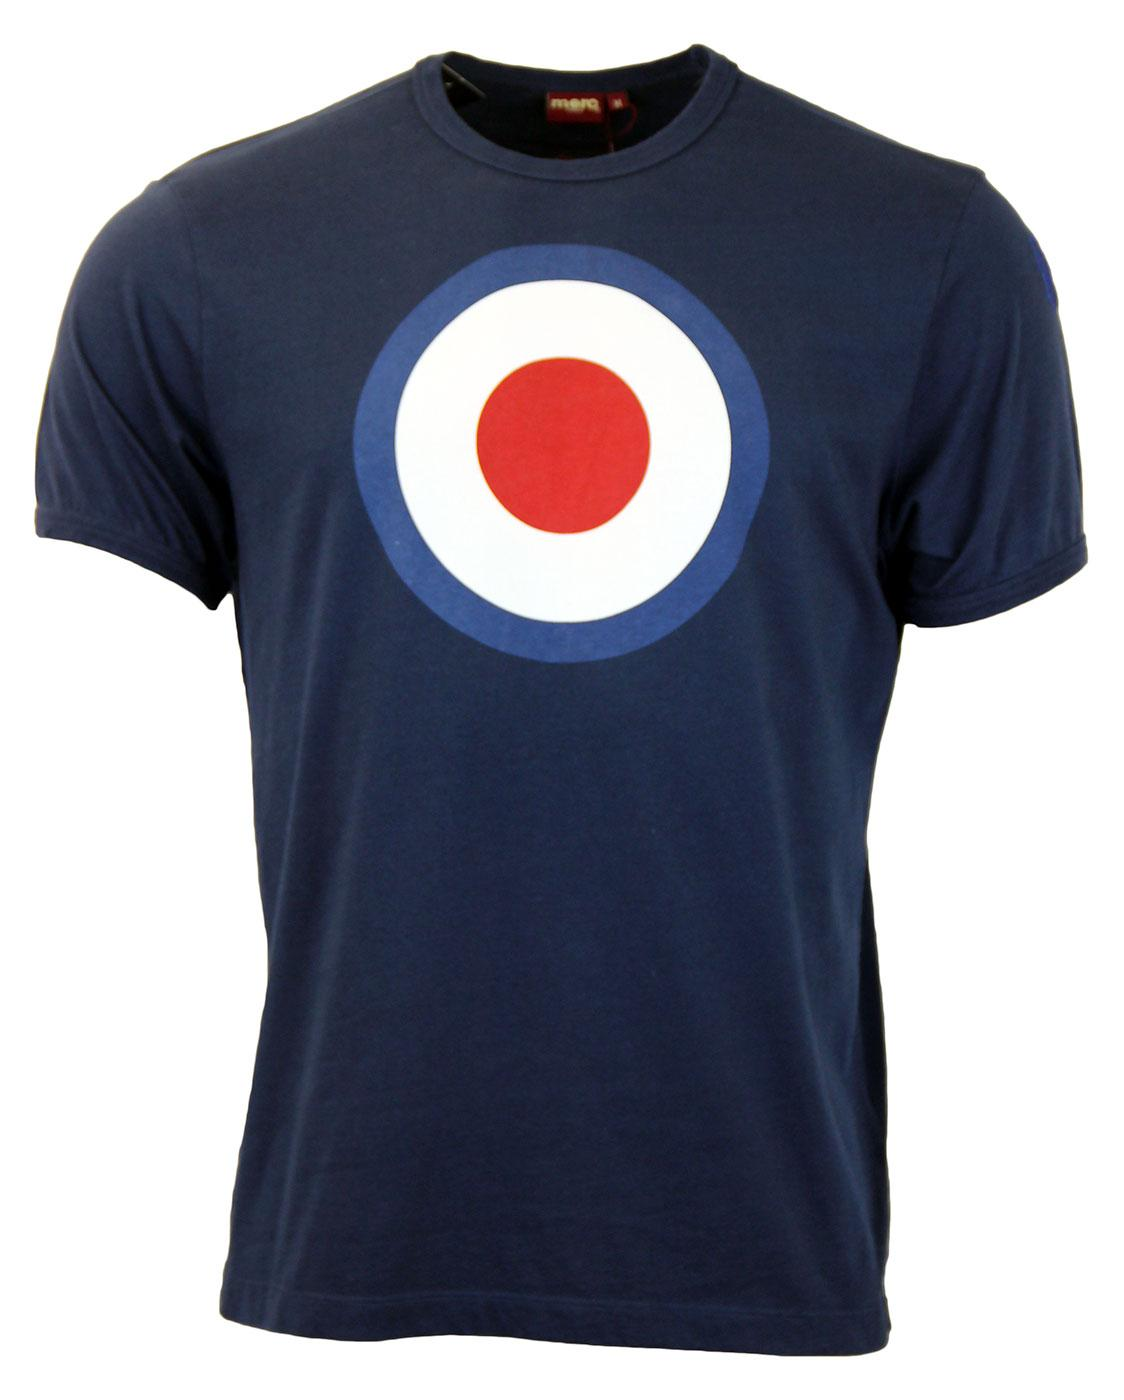 Ticket MERC Mod Target Retro Pop Art T-Shirt NAVY